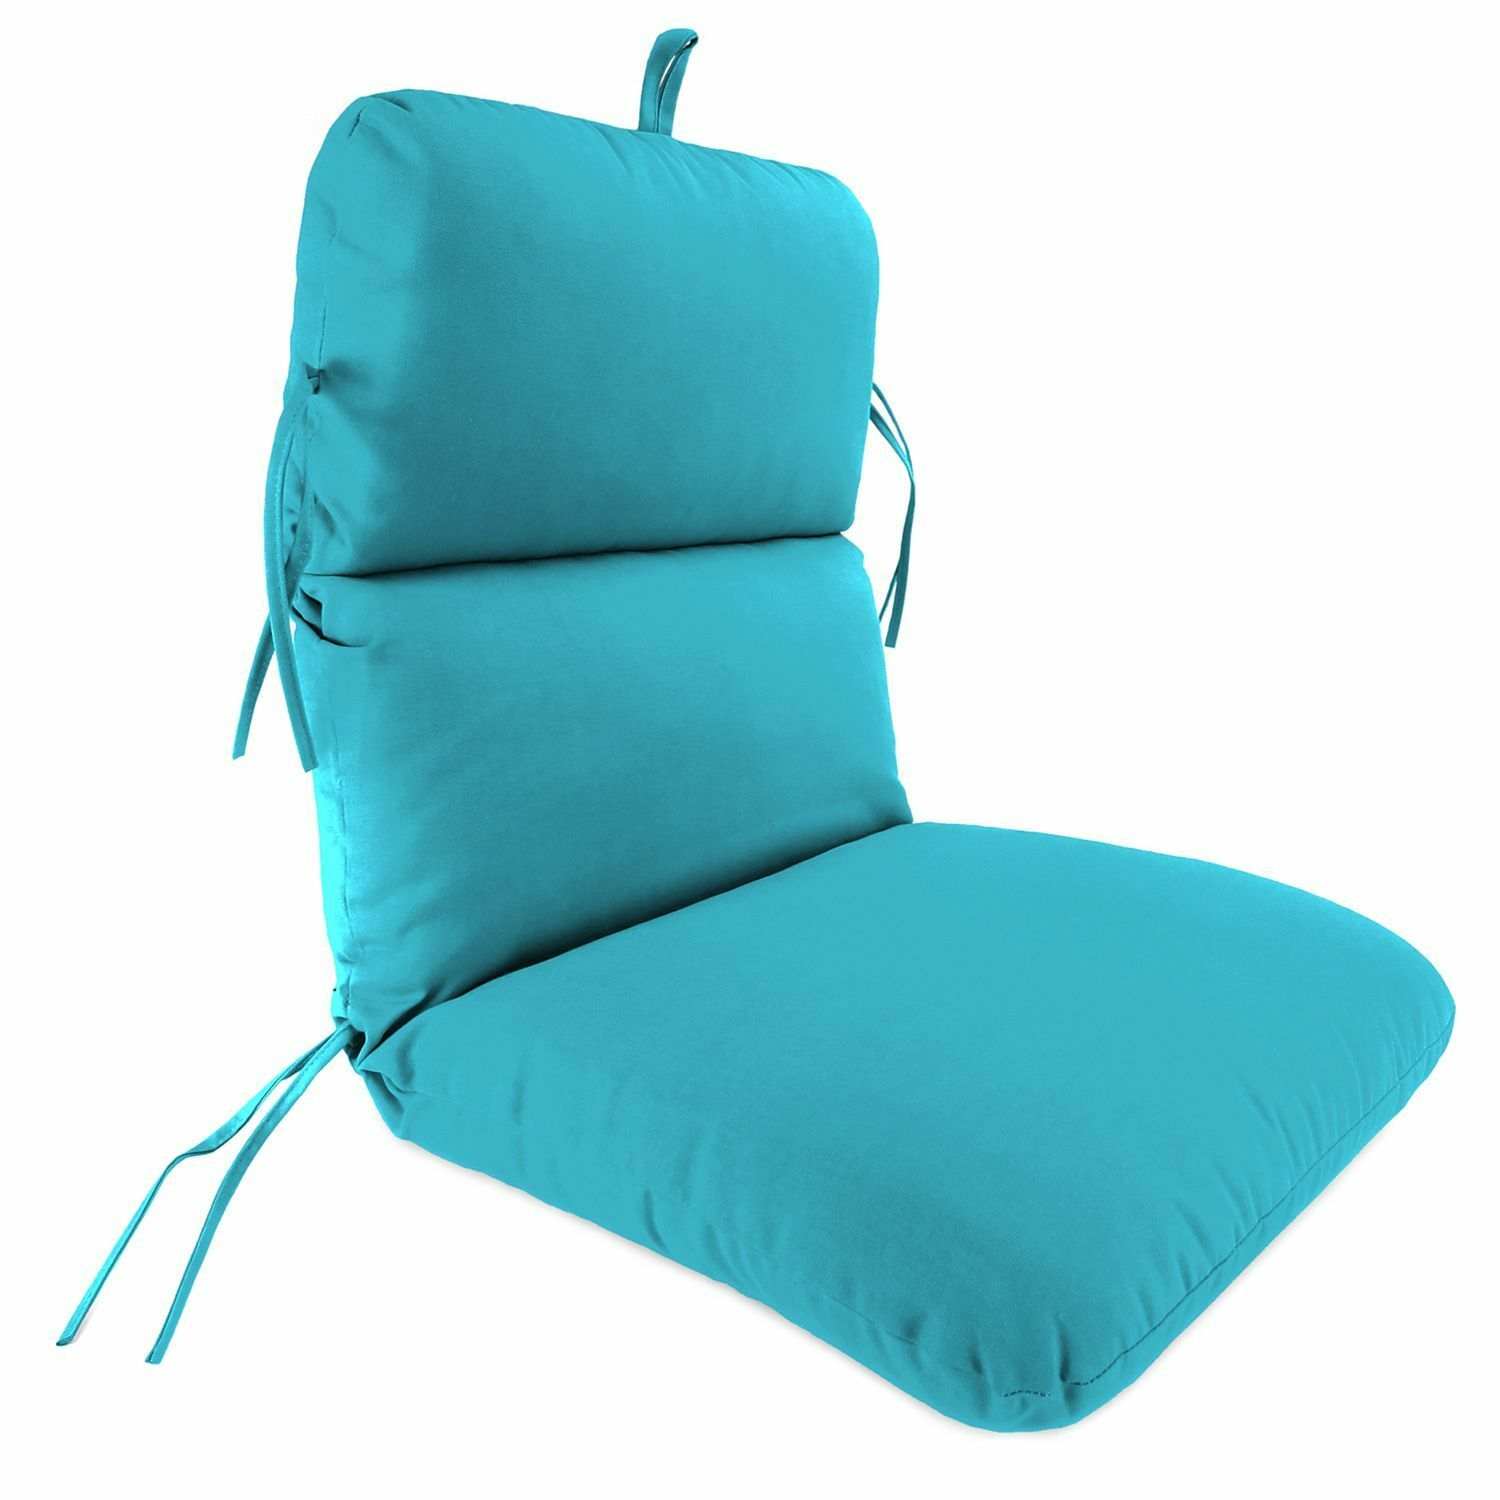 Patio Chair Cushion Pad Furniture Seat Replace Outdoor Lounge Pool Furniture